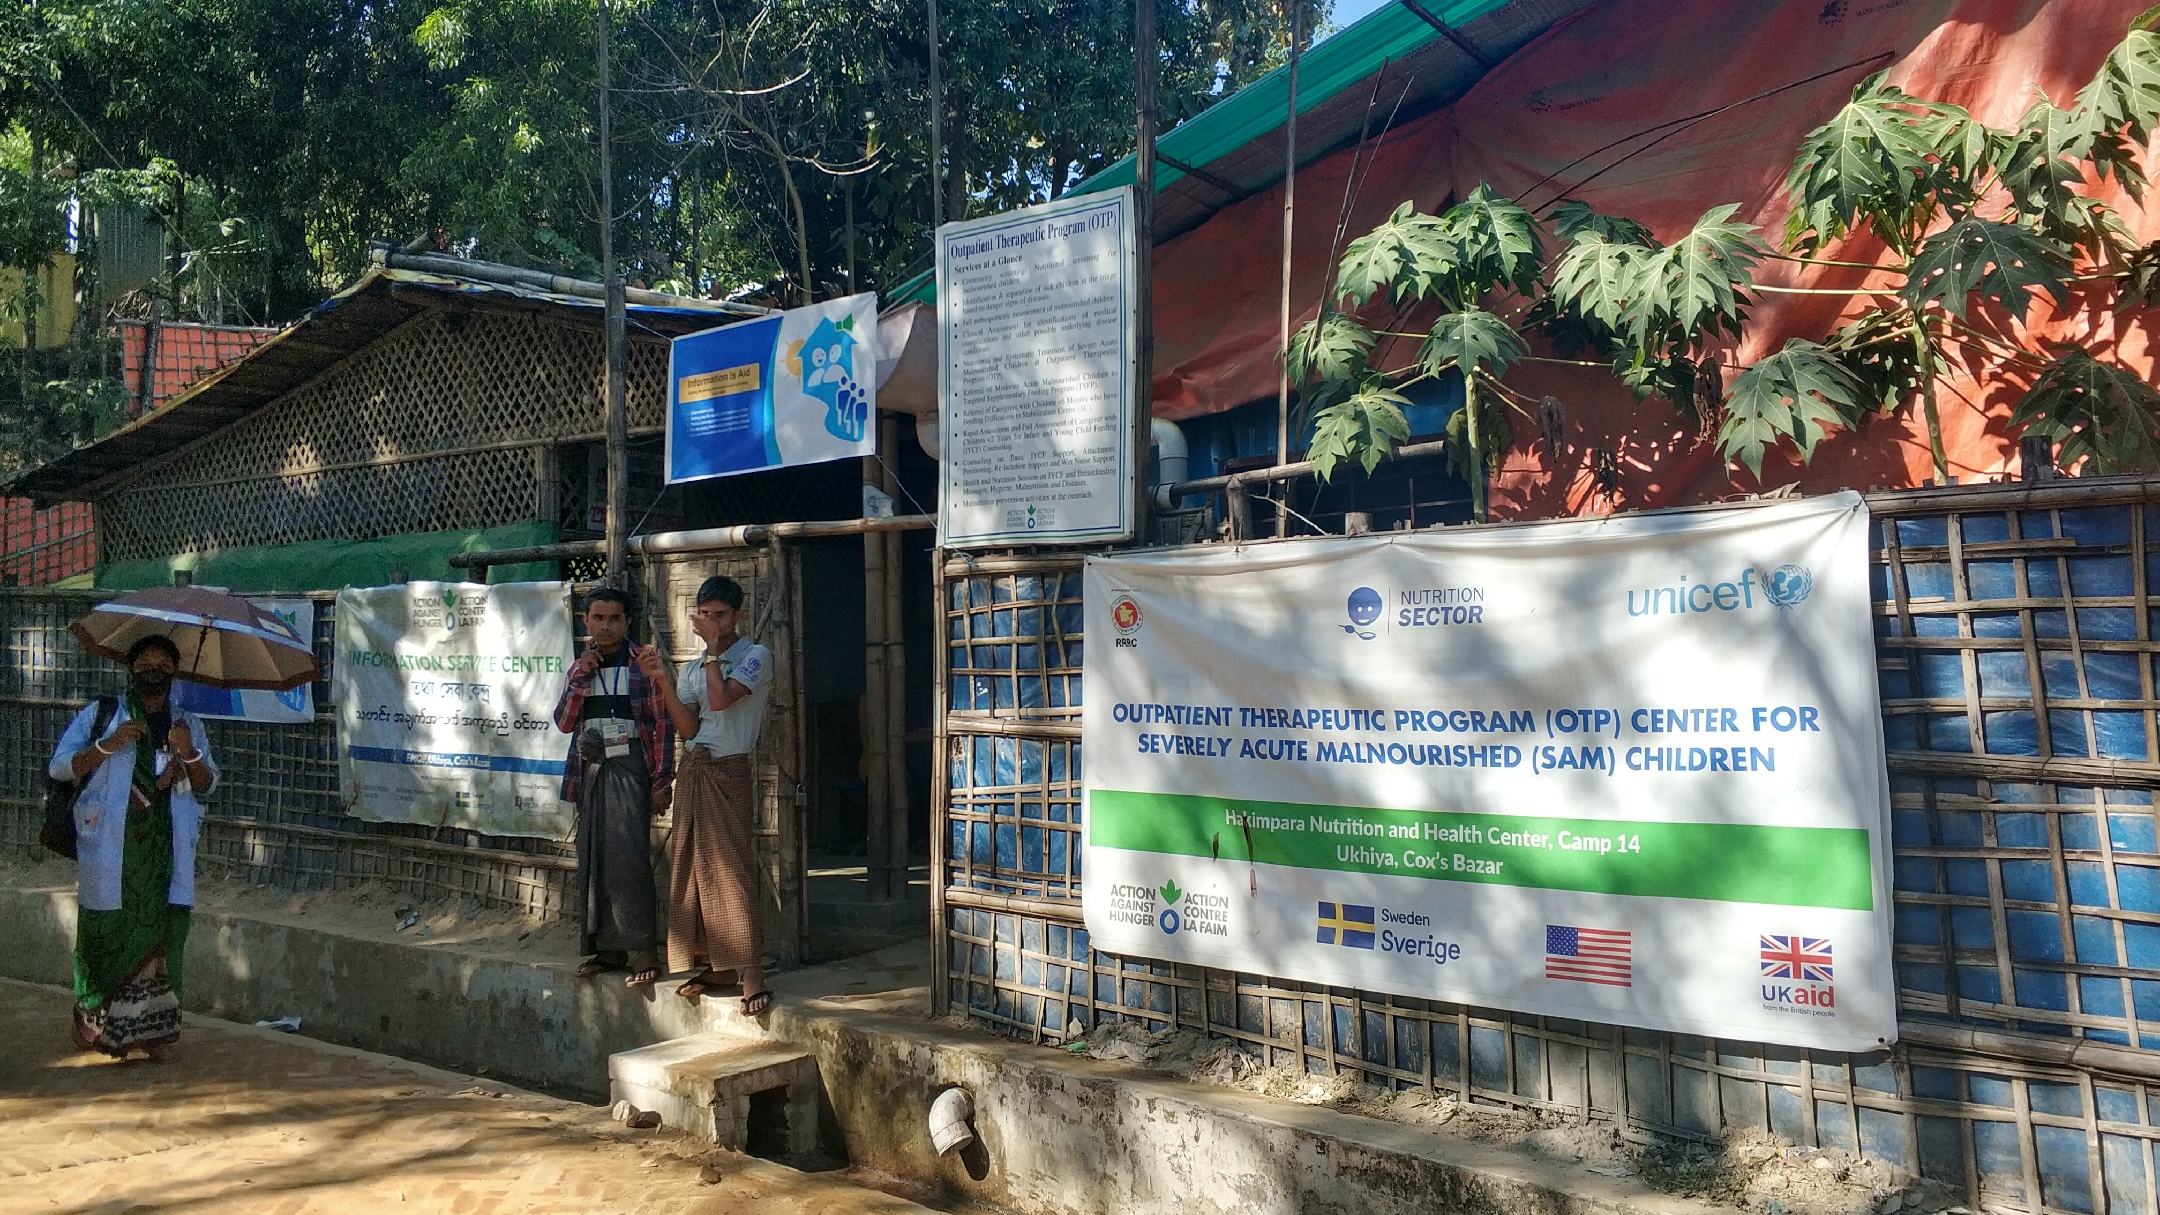 A UNICEF supported therapeutic center for malnourished children at kutupalong refugee camp